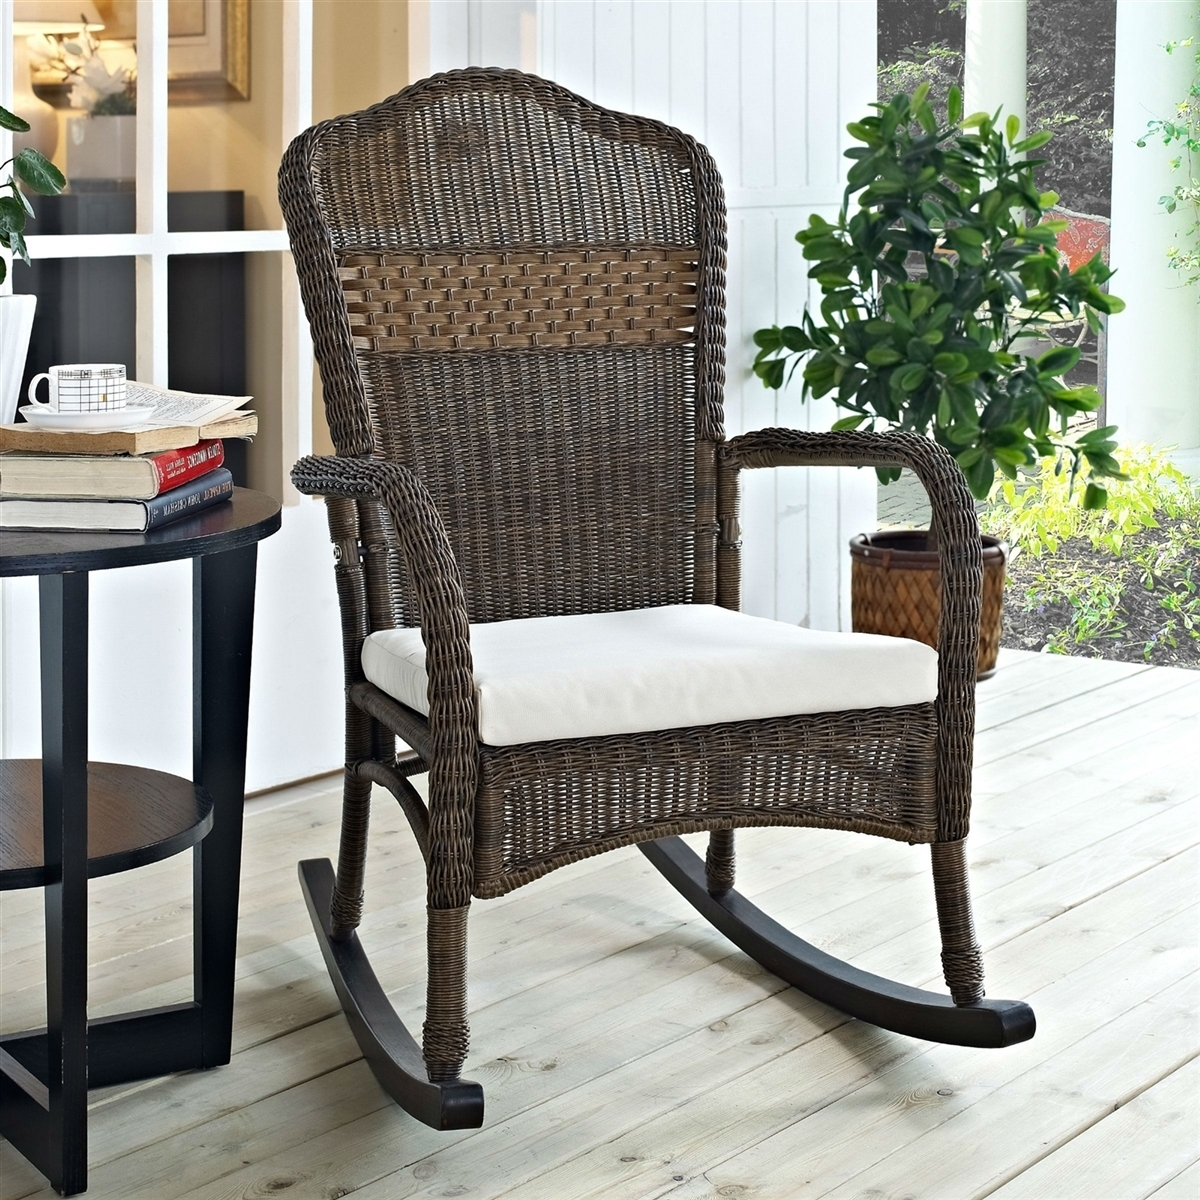 Chair | Outdoor Rattan Rockers Resin Rockers Sale Indoor Wicker For Outdoor Wicker Rocking Chairs With Cushions (#3 of 15)